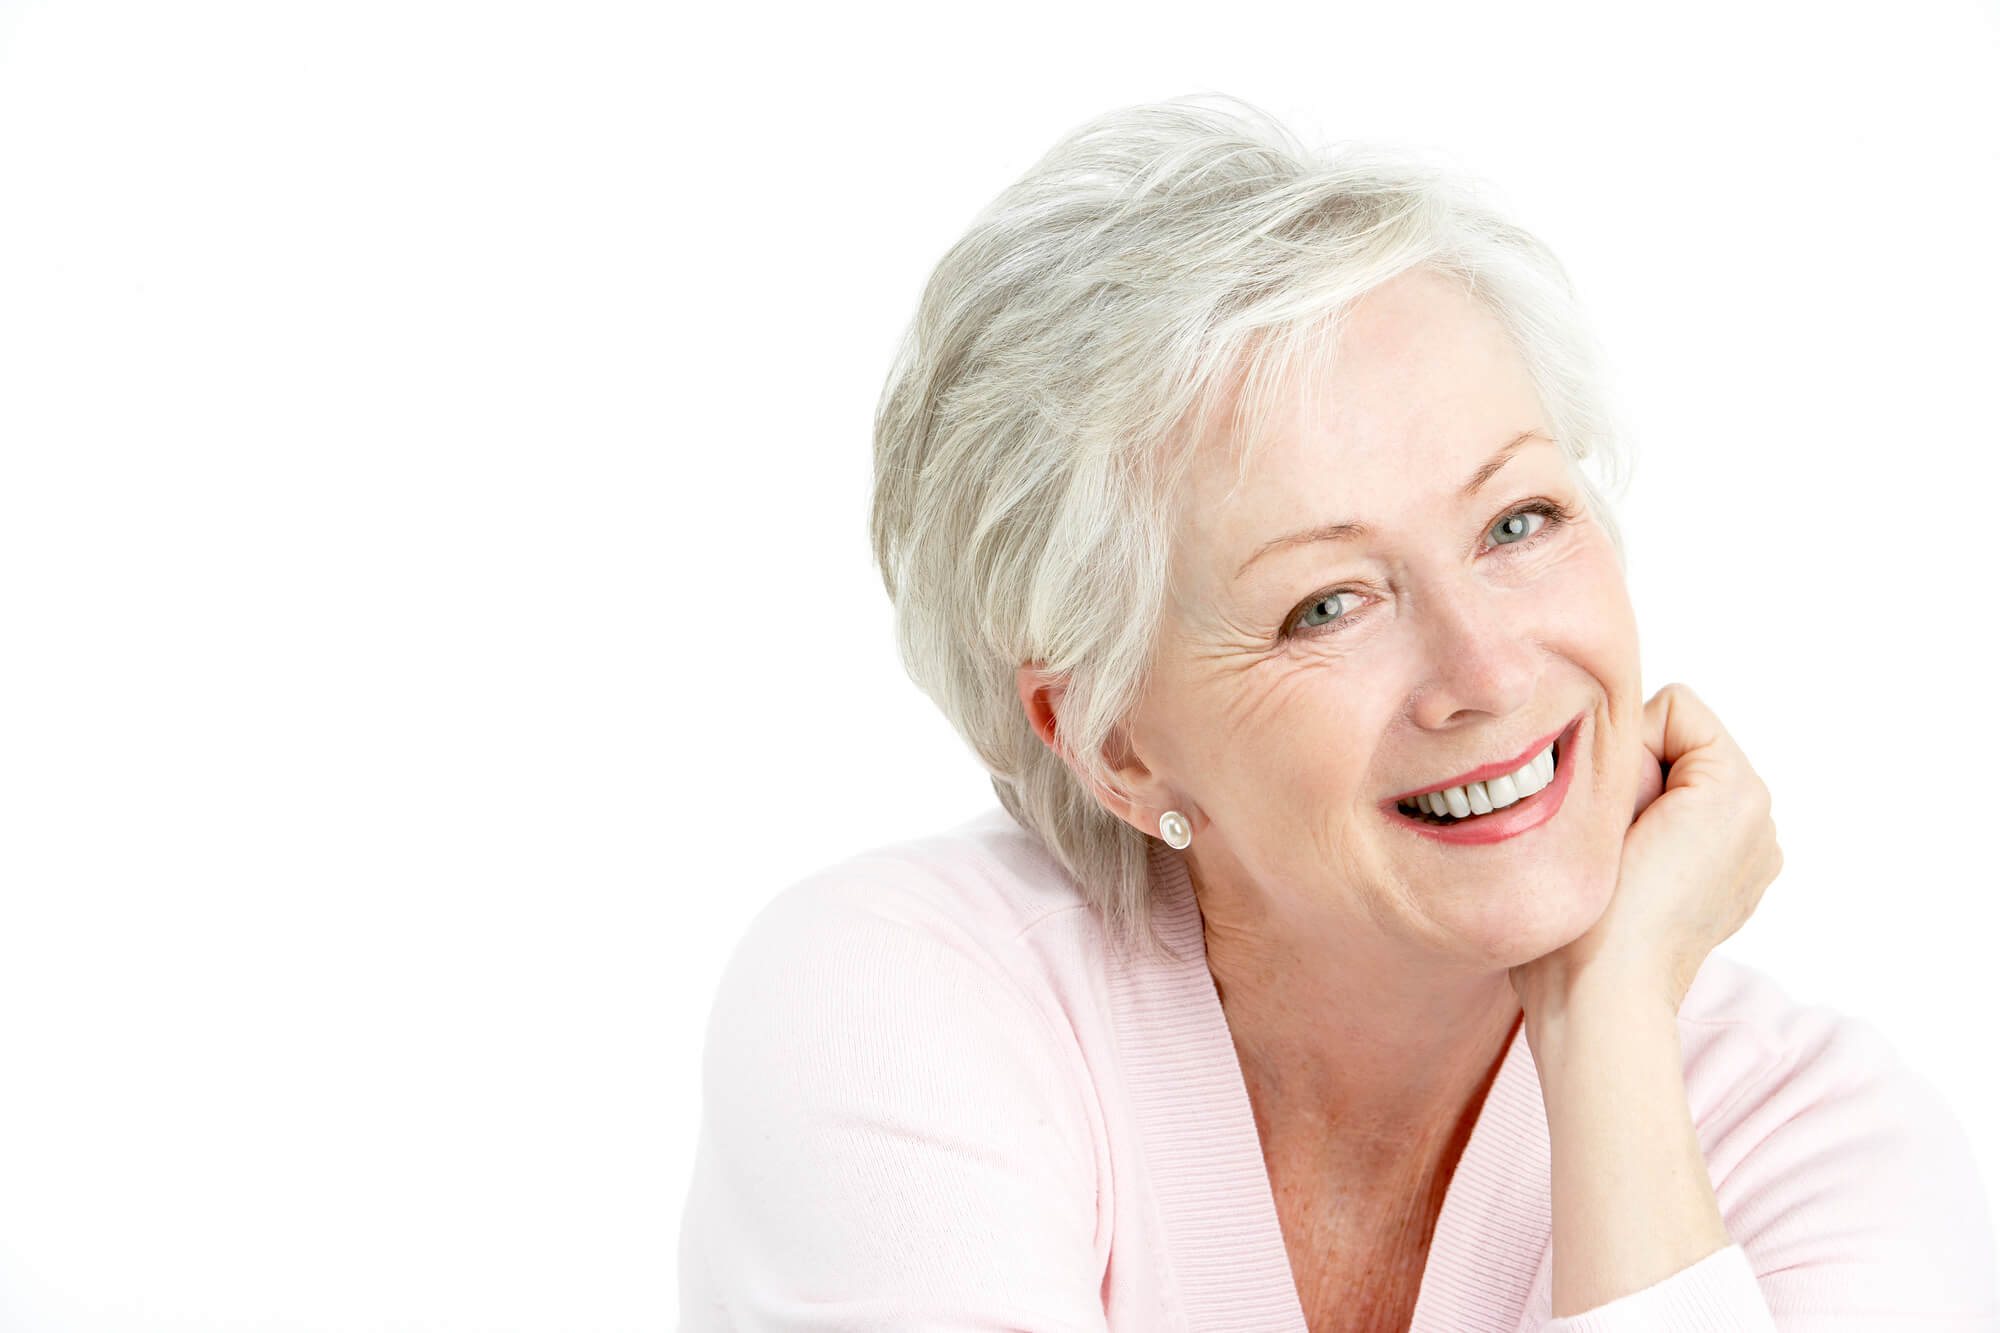 where can i get dental implants in coral springs?